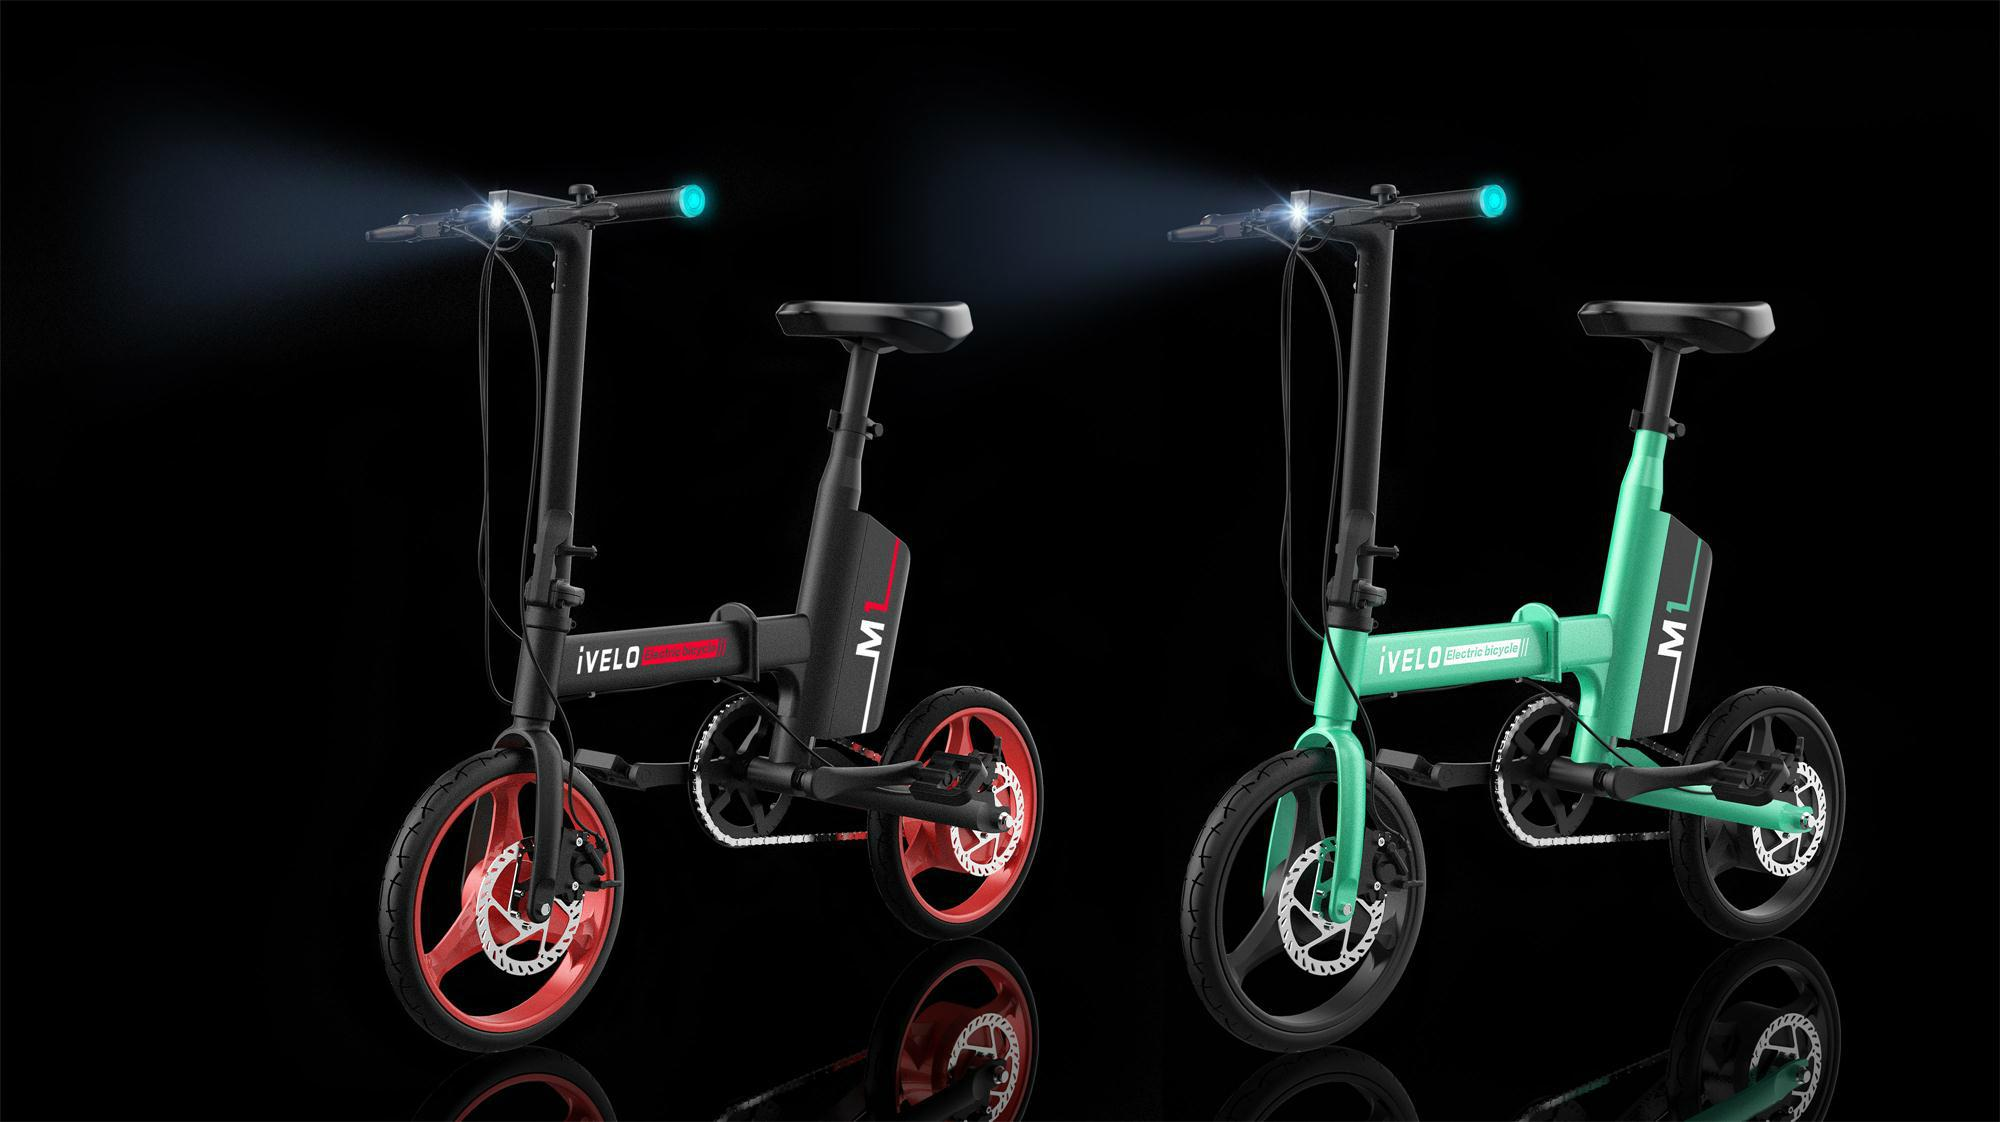 Ivelo Electric Folding Bike Small Electric Car With pedal 1